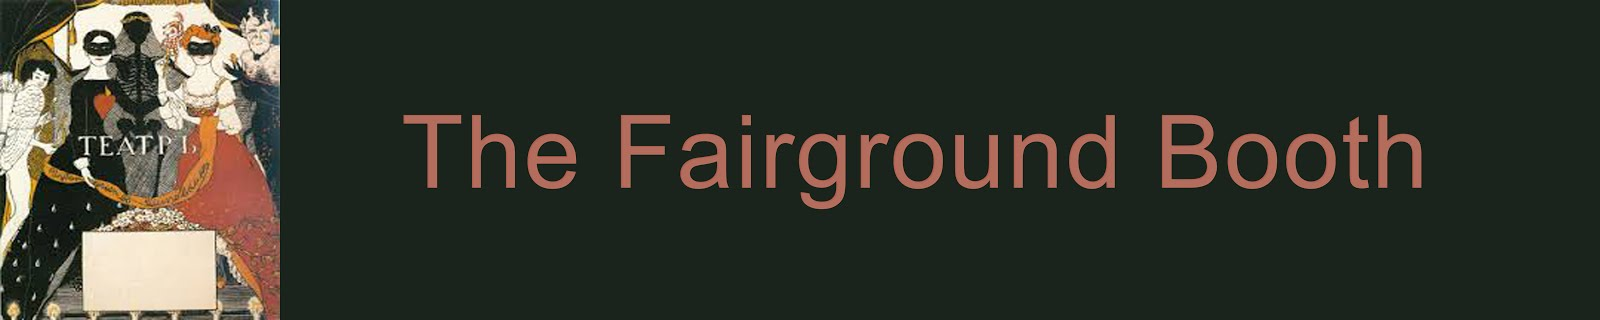 The Fairground Booth